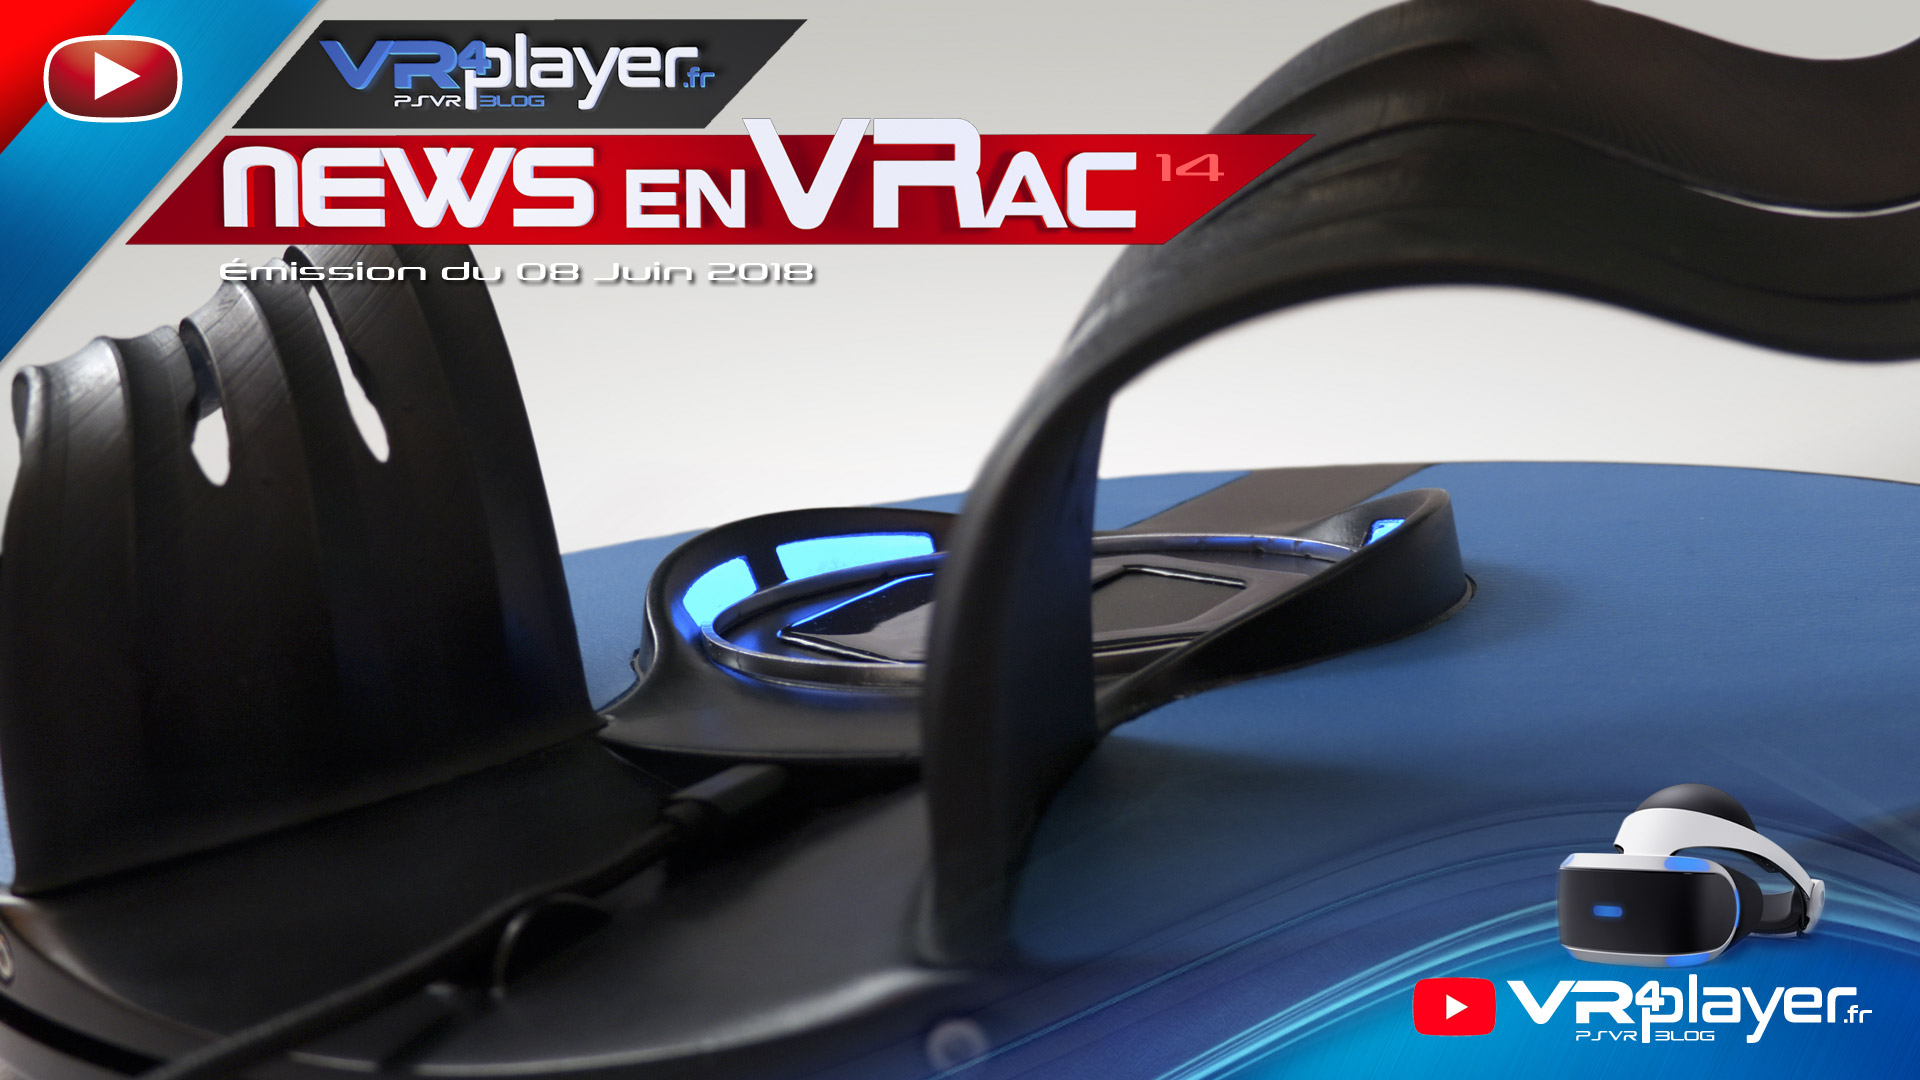 Les News en VRac PlayStation VR Émission 14 VR4Player